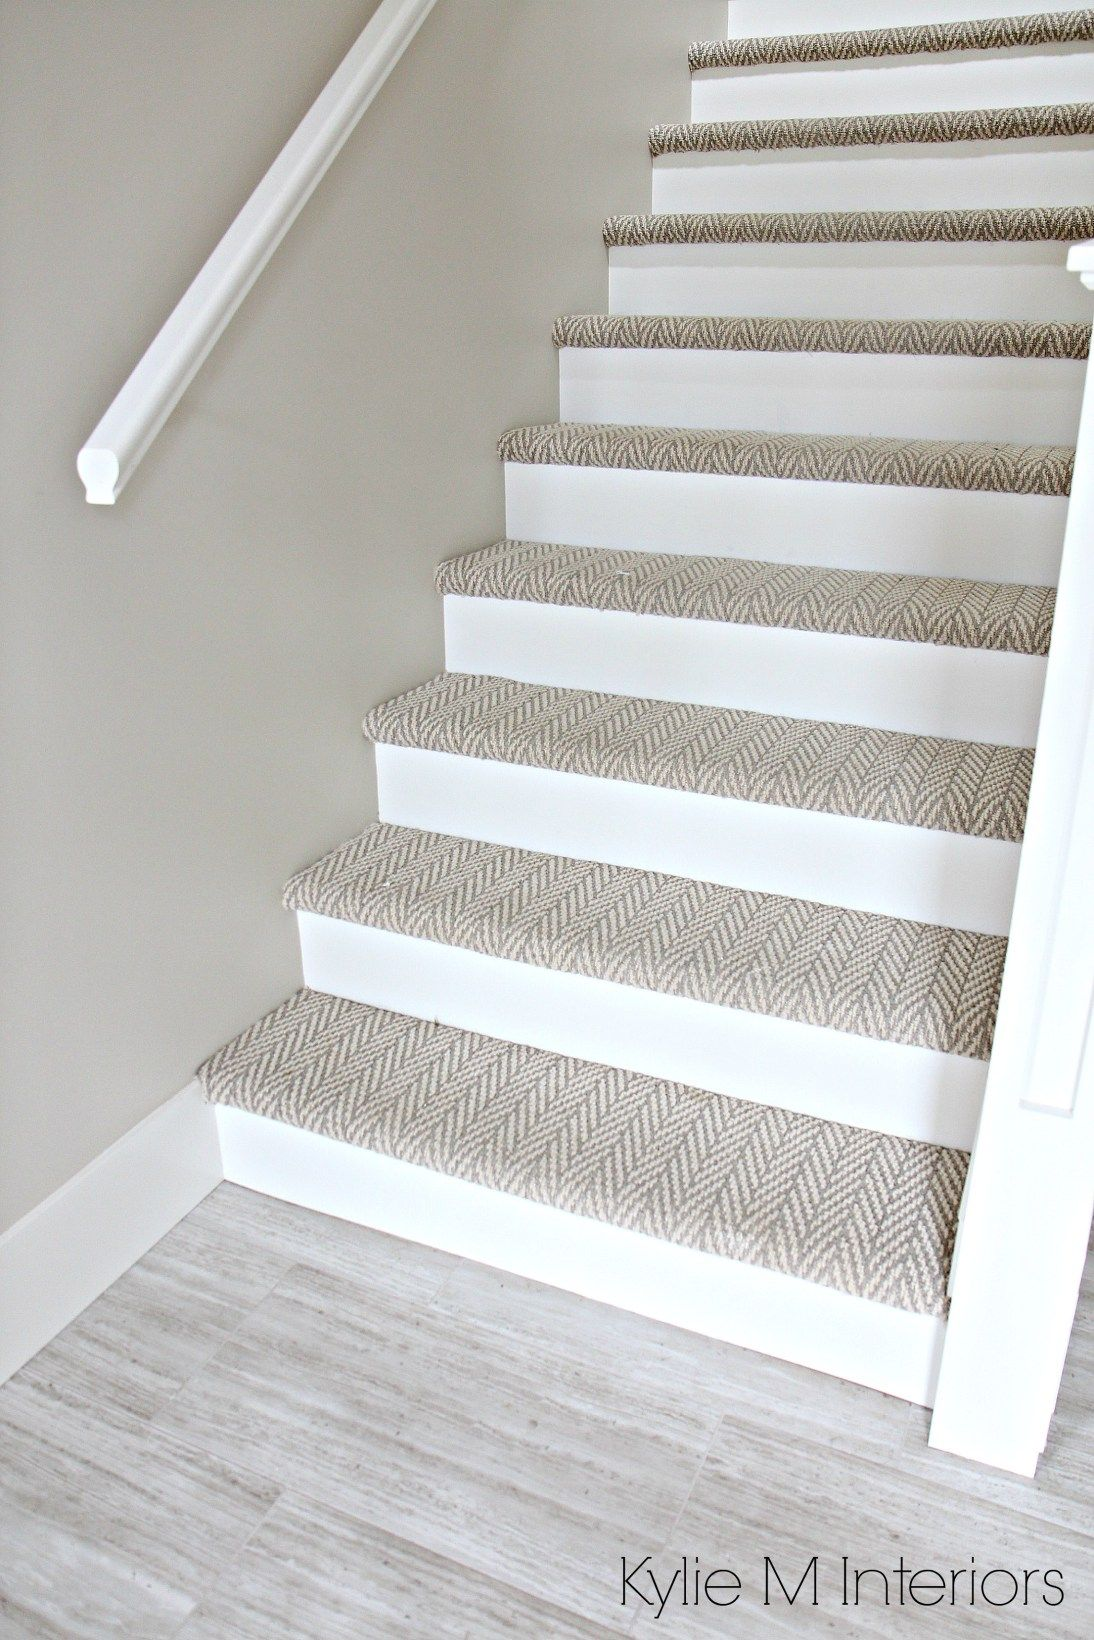 The 6 Best Not Boring Paint Colours For A Dark Hallway Stairwell | White Stairs With Carpet | Black | Chic | Victorian Staircase Carpet | Hardwood | Pinstripe Grey